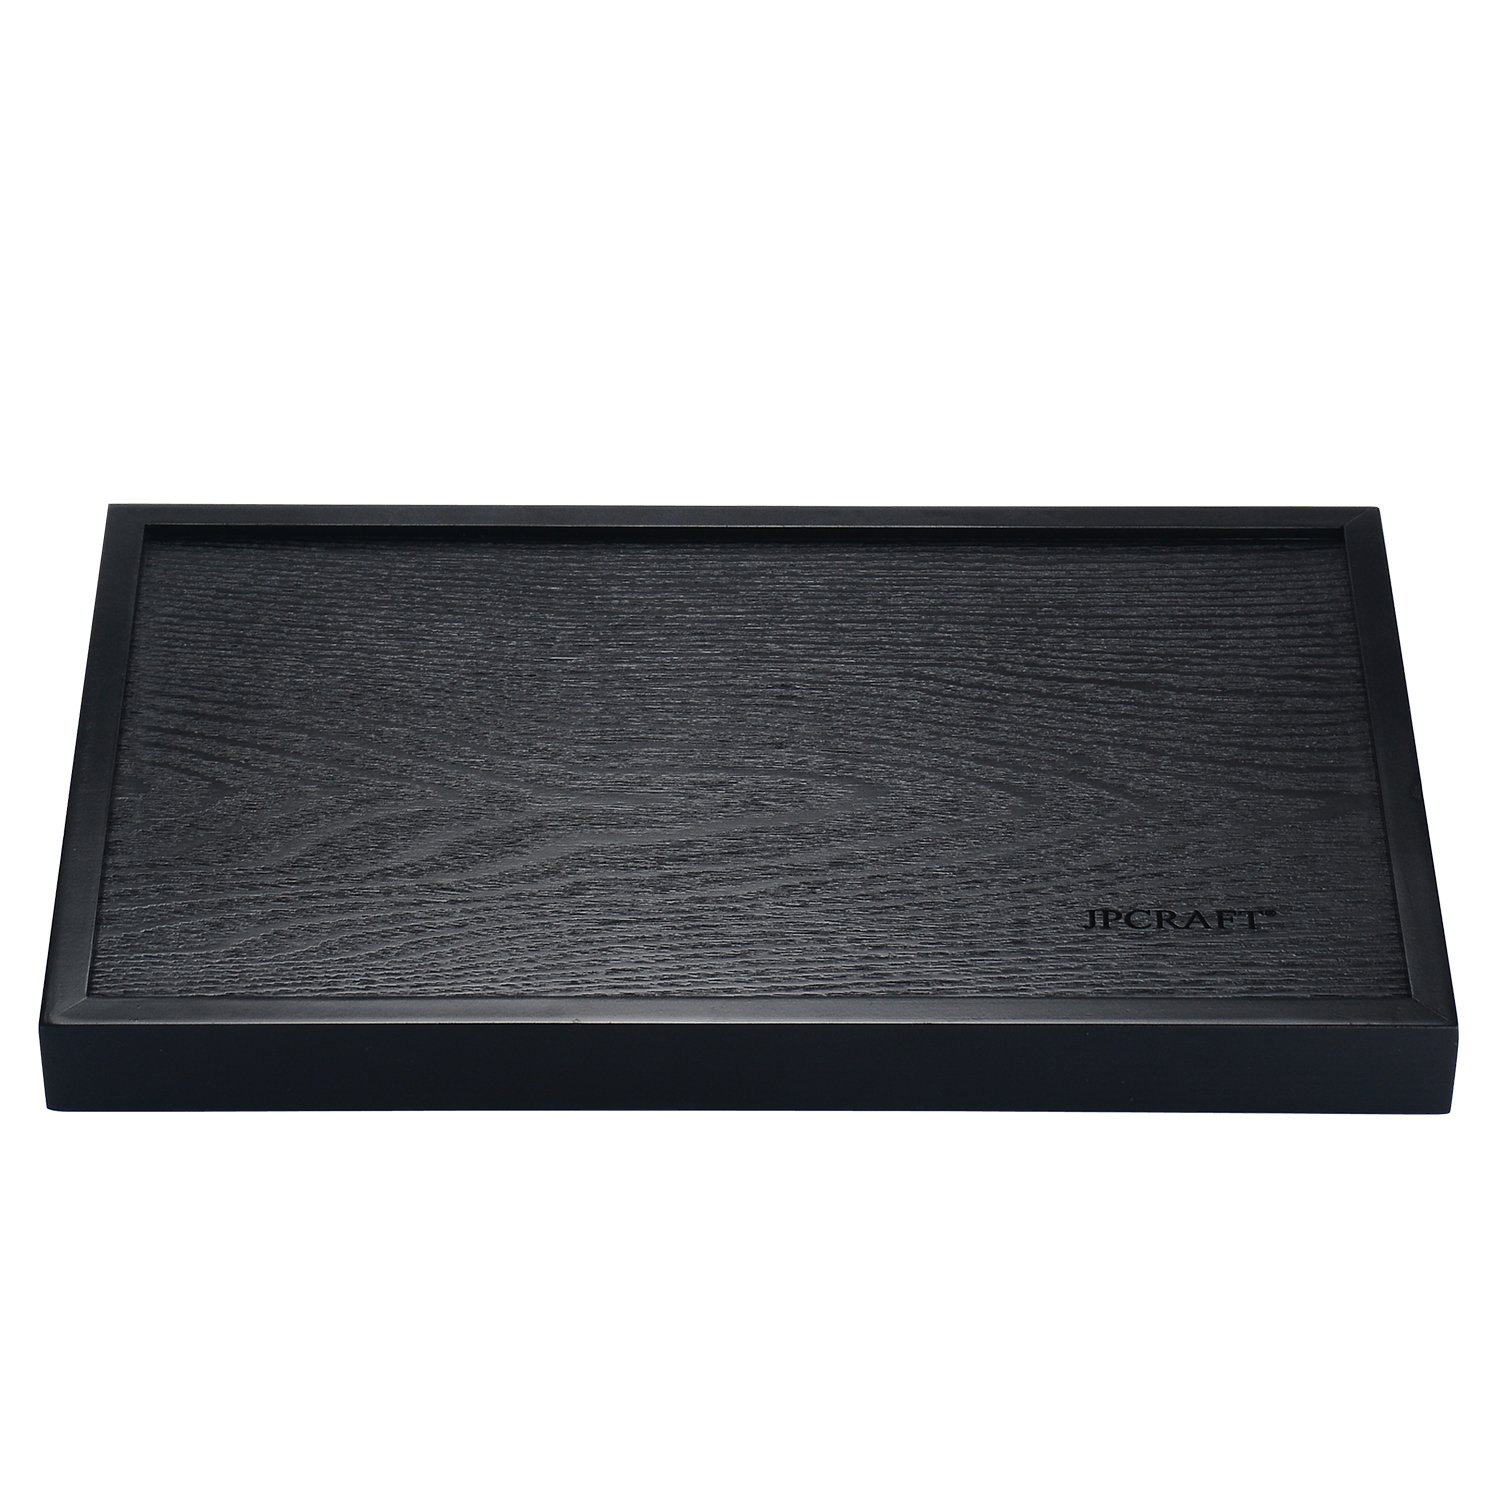 JPCRAFT Rectangle Wooden Serving Tray, Black, 14 by 9-Inch by JPCRAFT (Image #5)